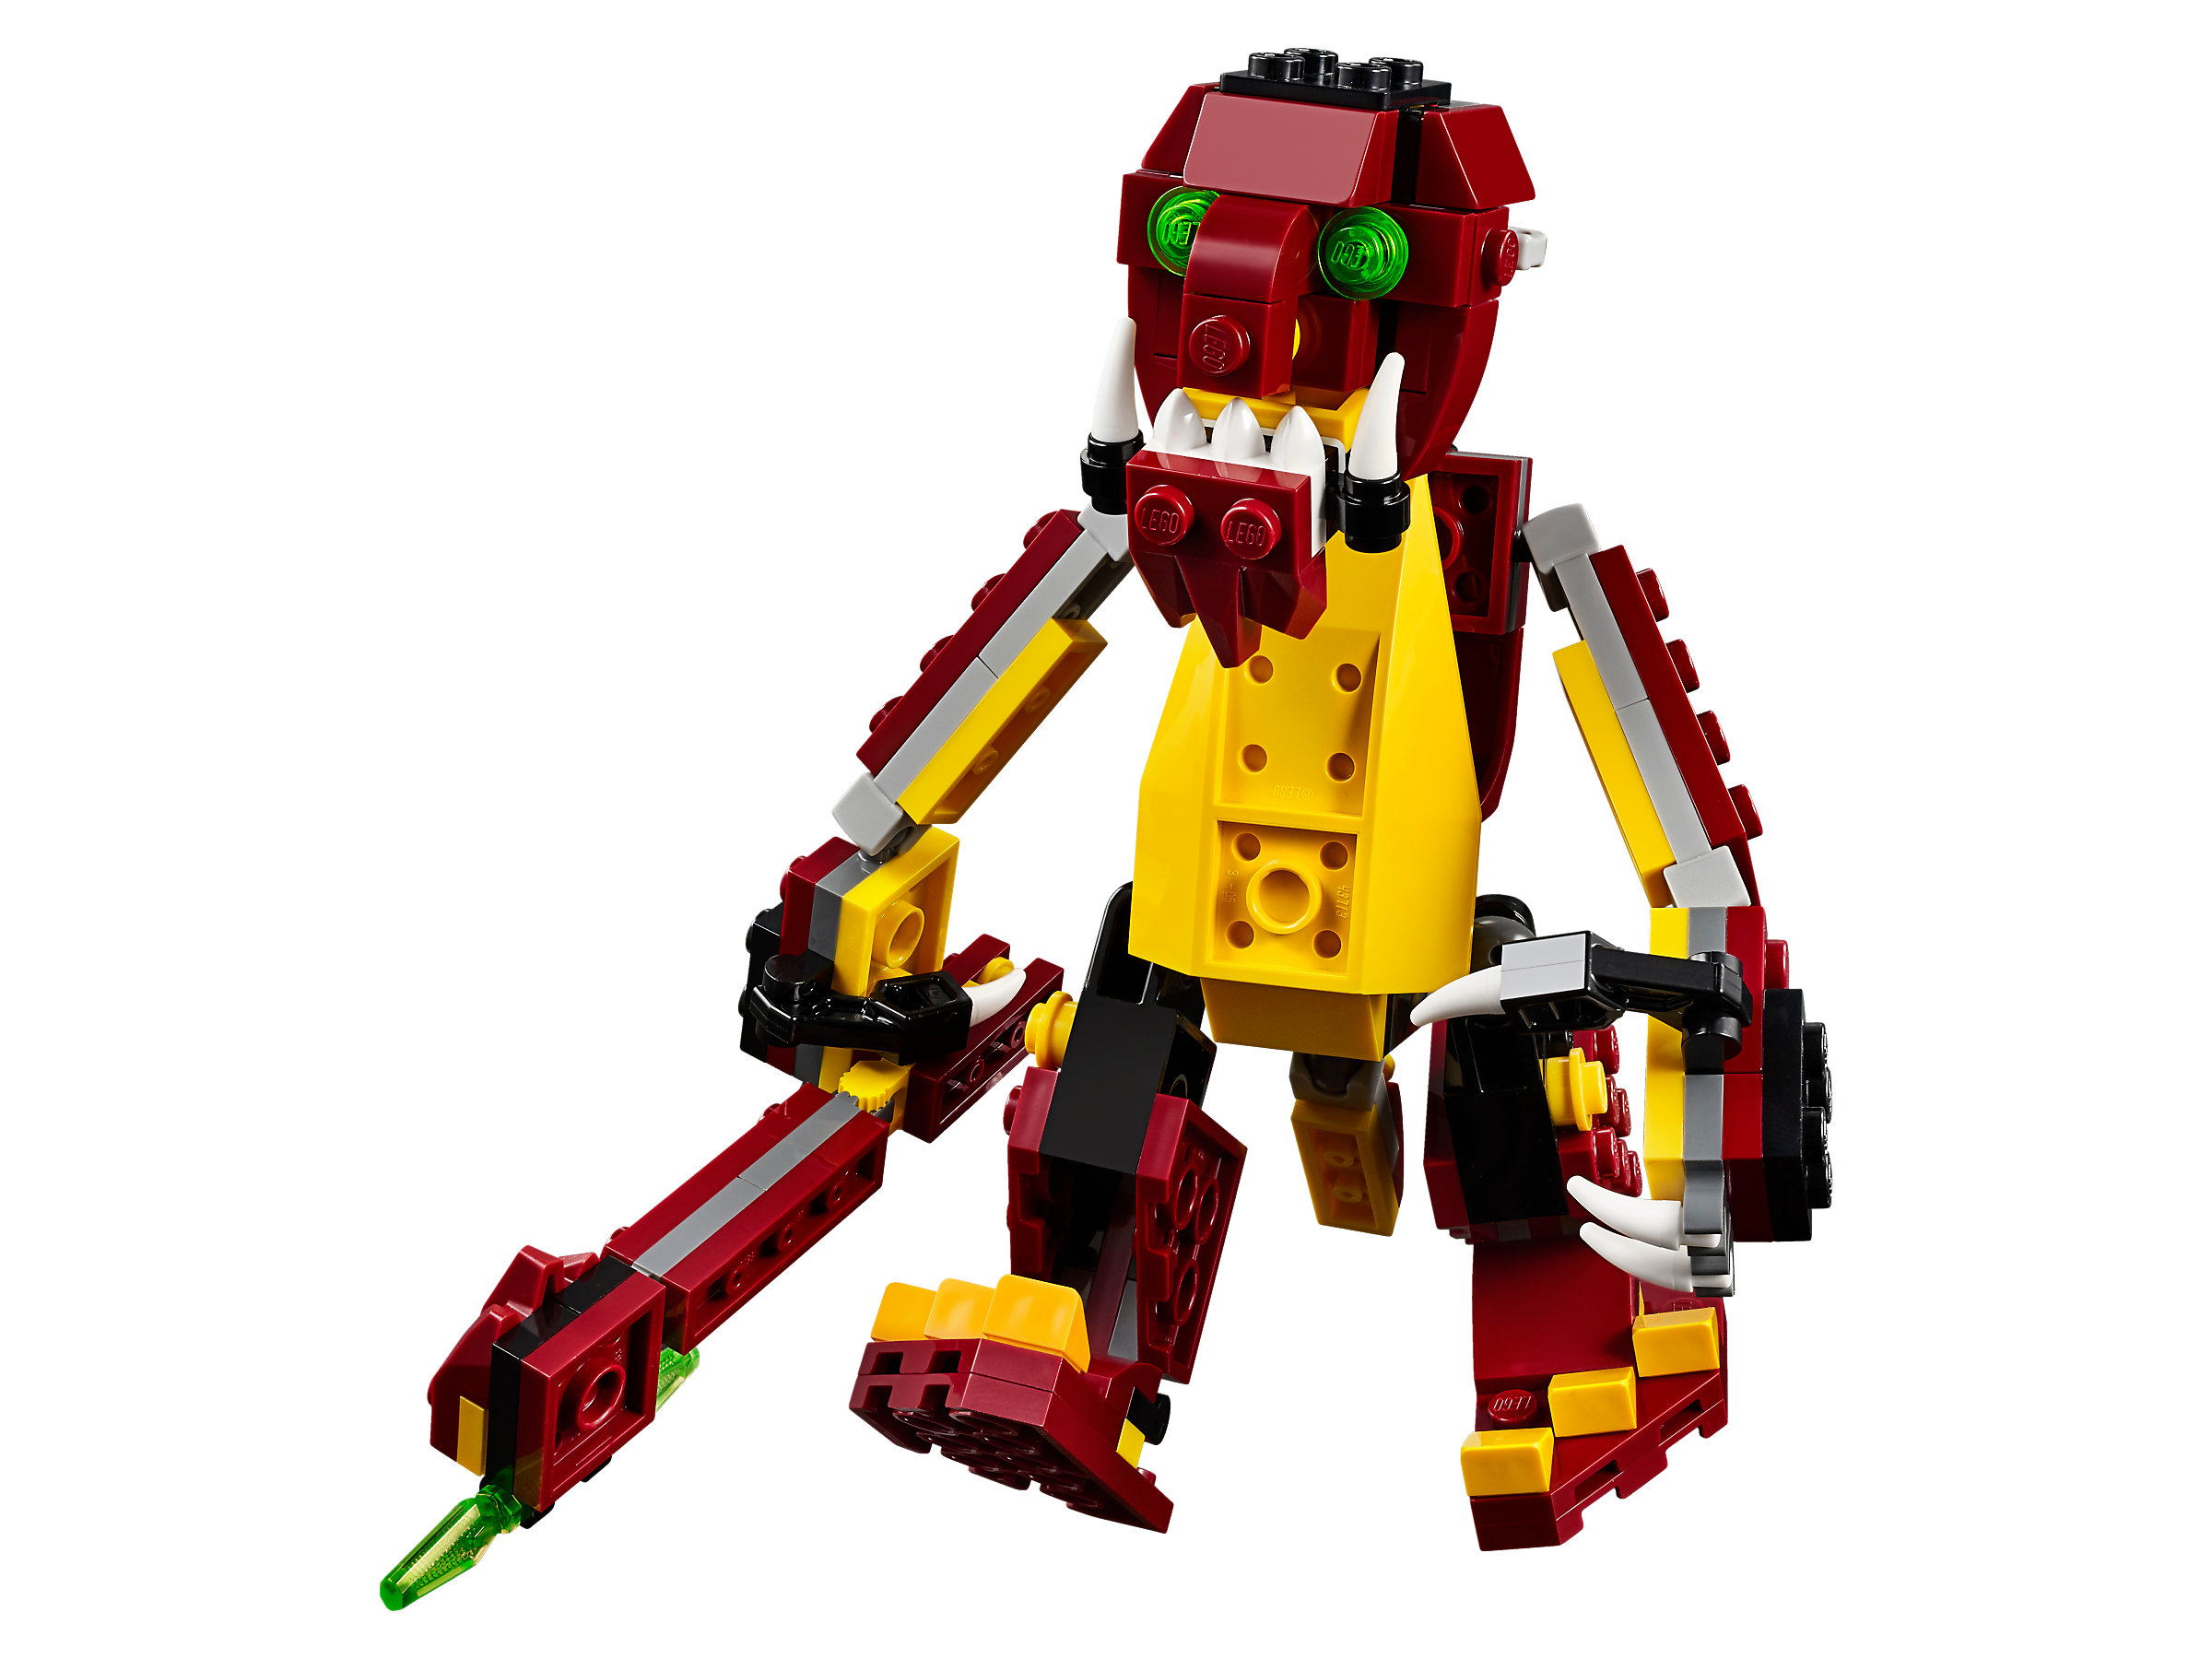 LEGO Bau- & Konstruktionsspielzeug New Release for 2018 31073 LEGO Creator Mythical Creatures Set 223 Pieces Age 7